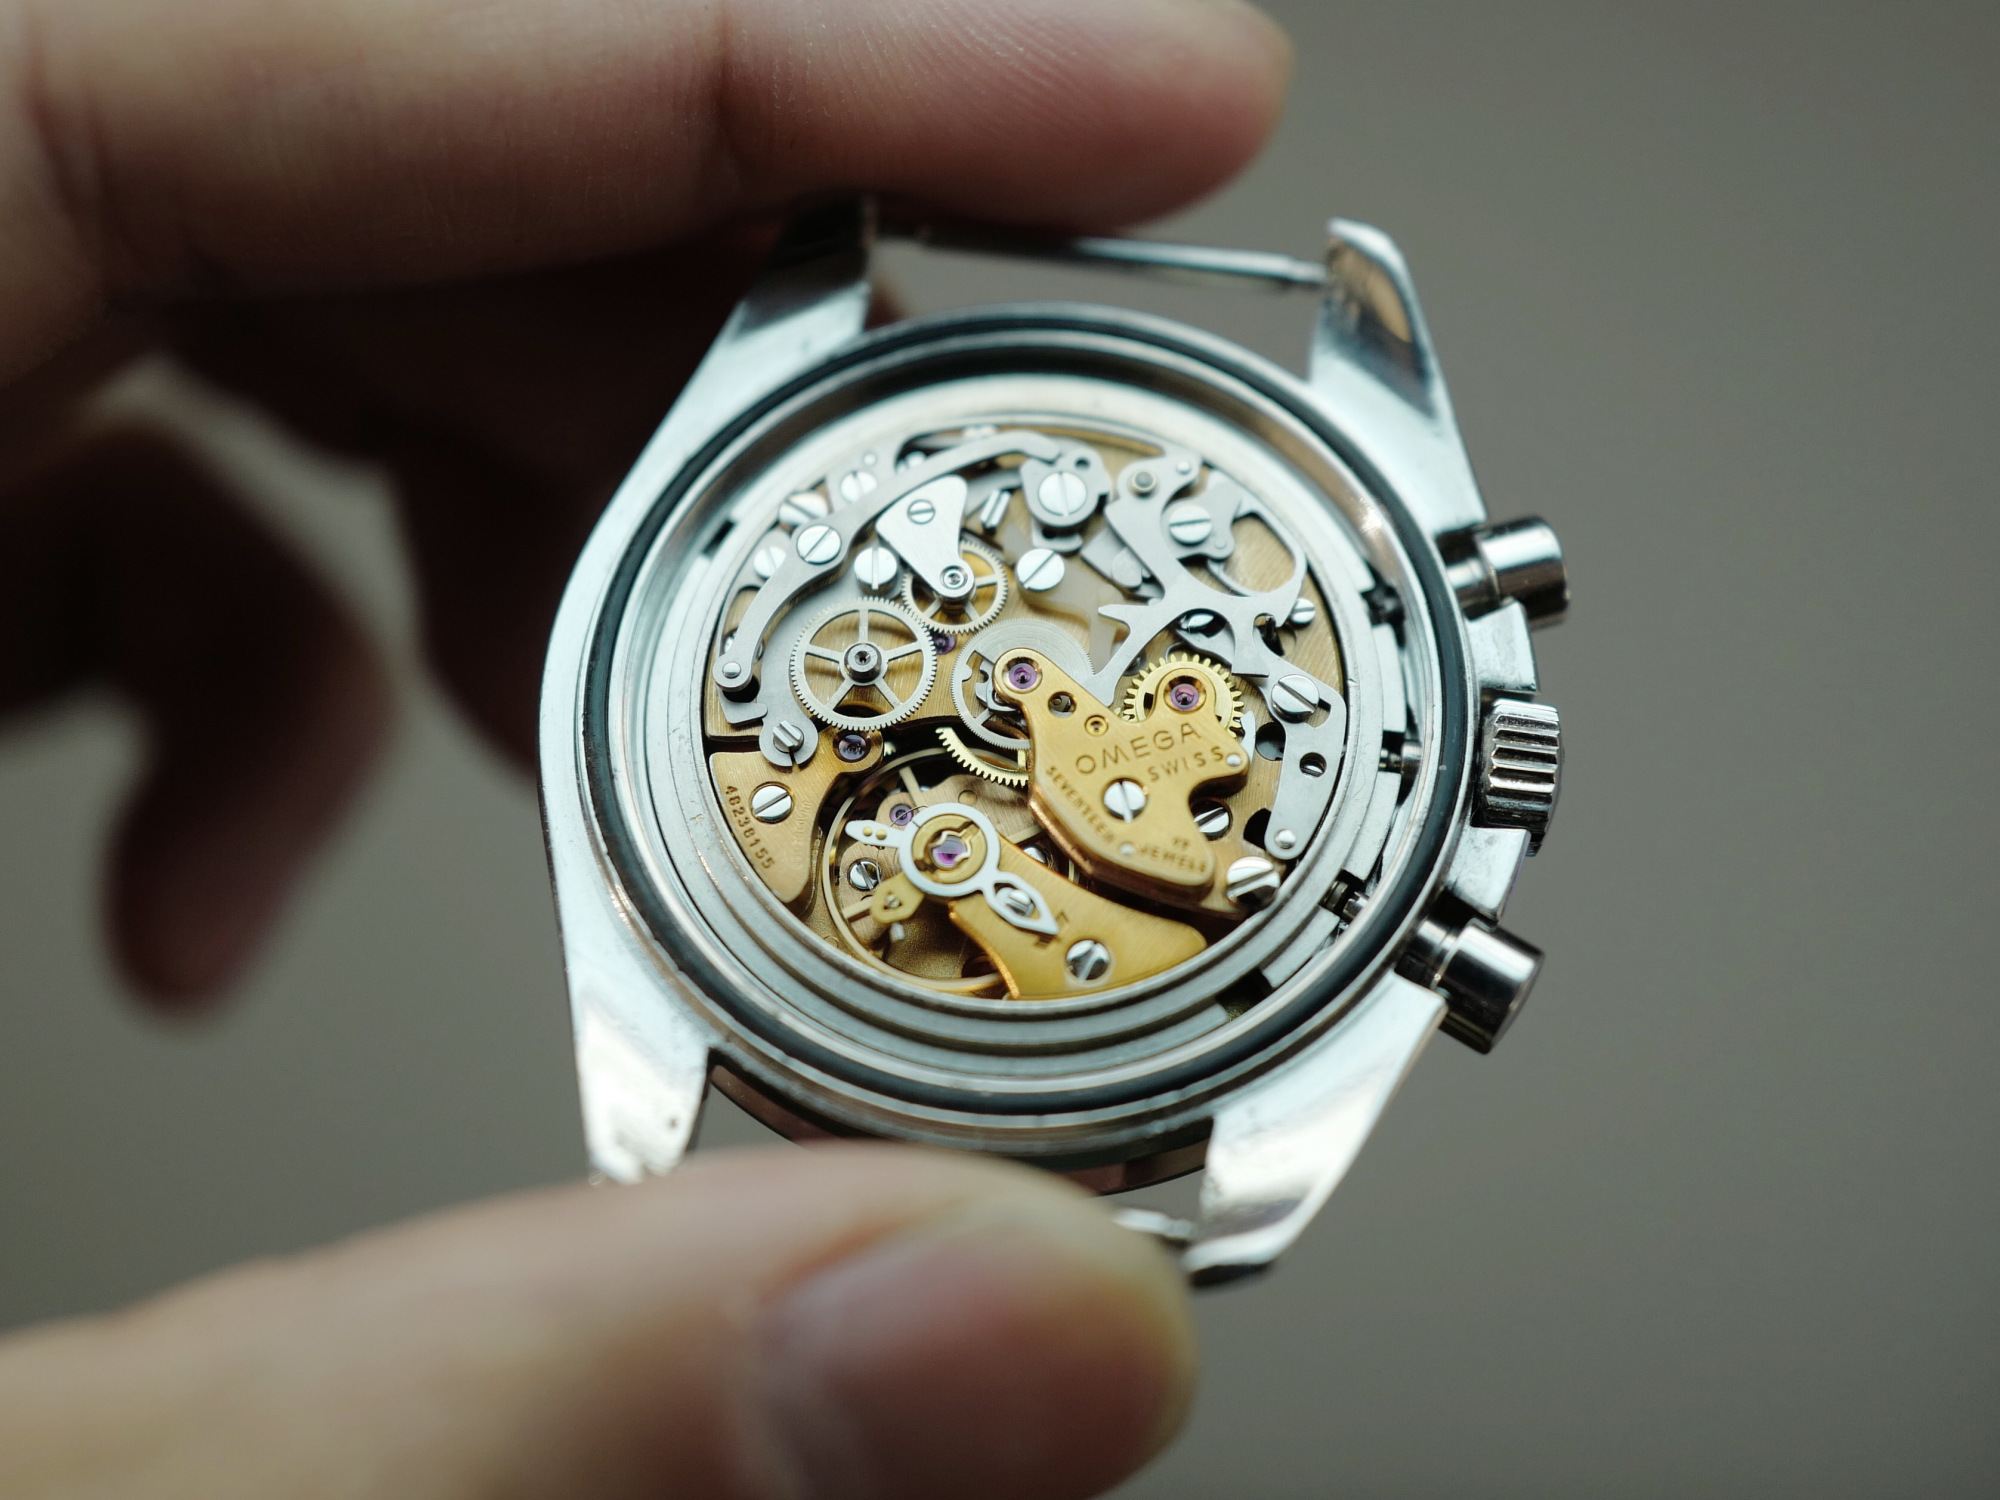 Appraise and Sell your Watch - Whether you are looking to assess the value of your watch, trade it in for something new (or old), or simply sell your watch, rest assured our team will assist you in your needs. Please fill out the form below and we will respond within 24 hours.